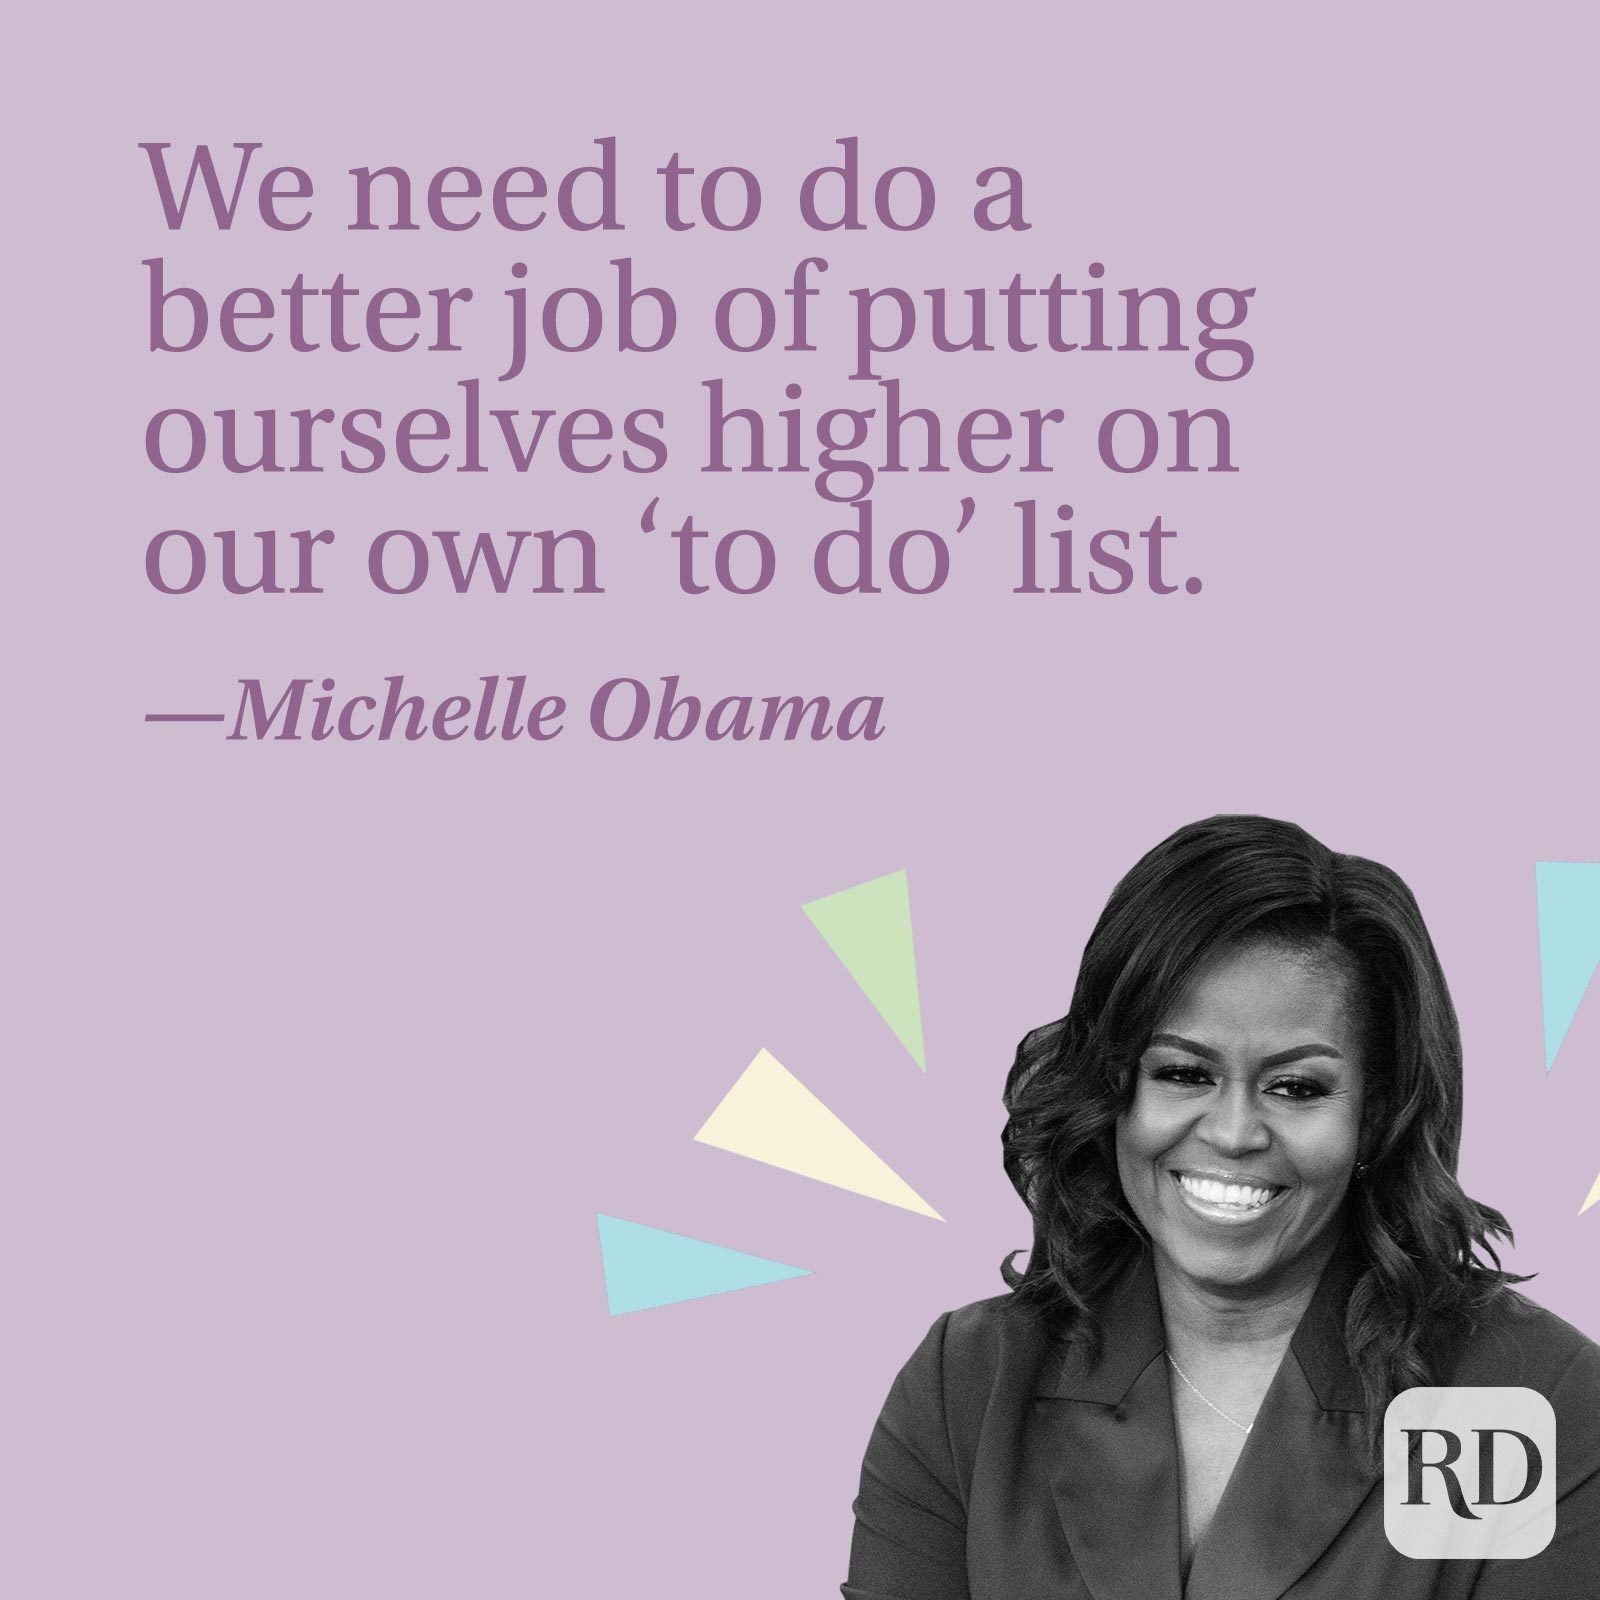 We need to do a better job of putting ourselves higher on our own 'to do' list.—Michelle Obama